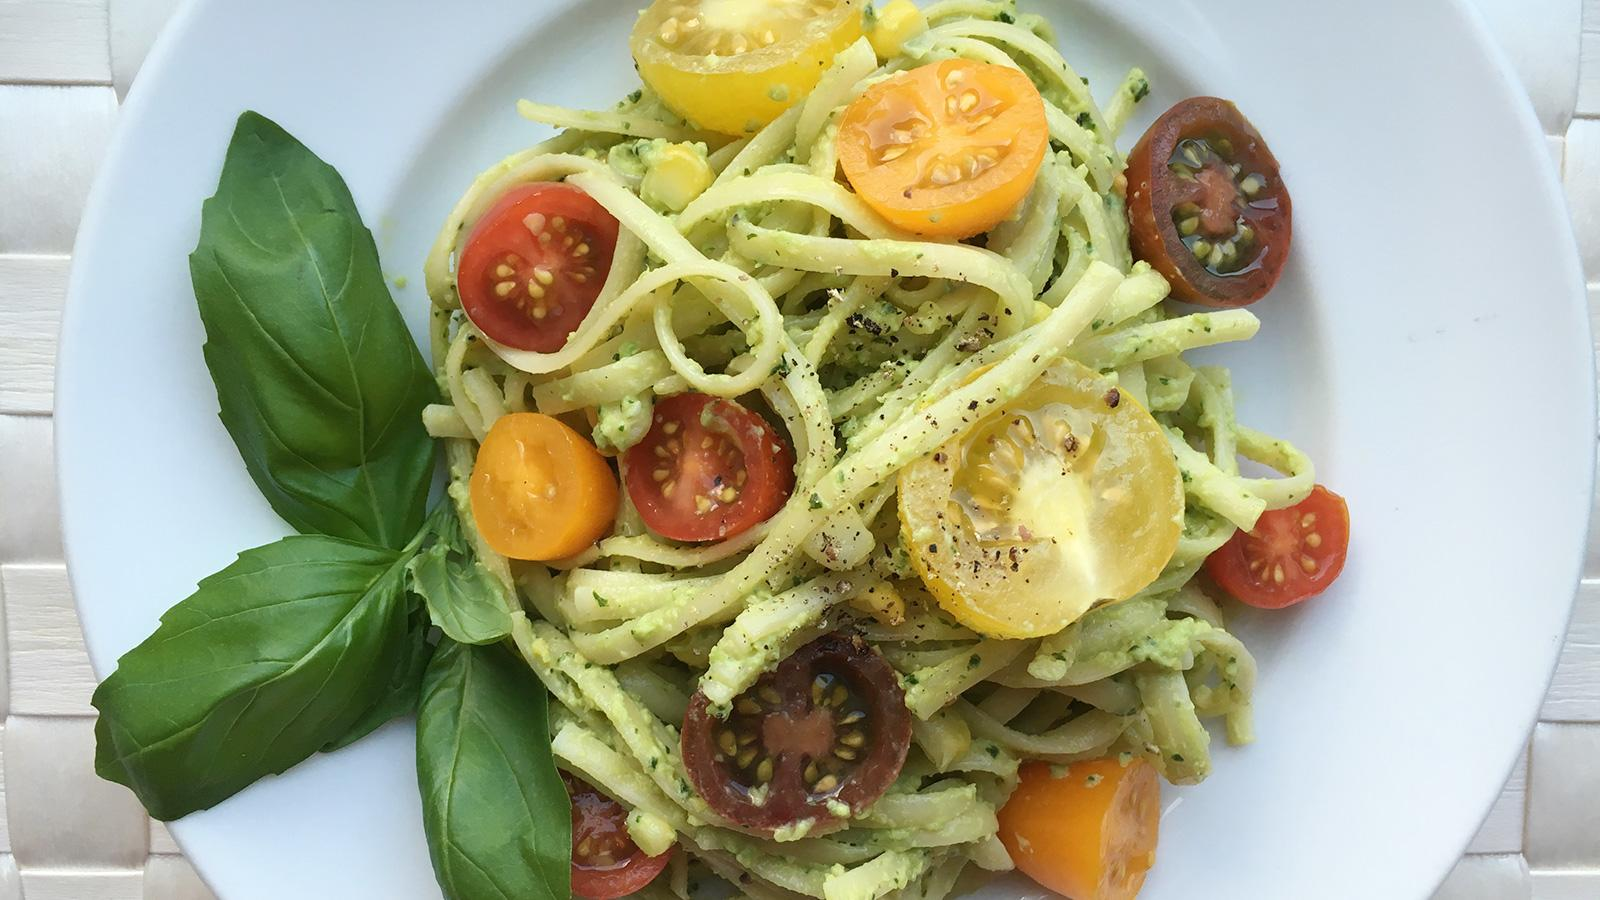 8 & $20: Avocado-Basil Pasta with a Creamy Italian White